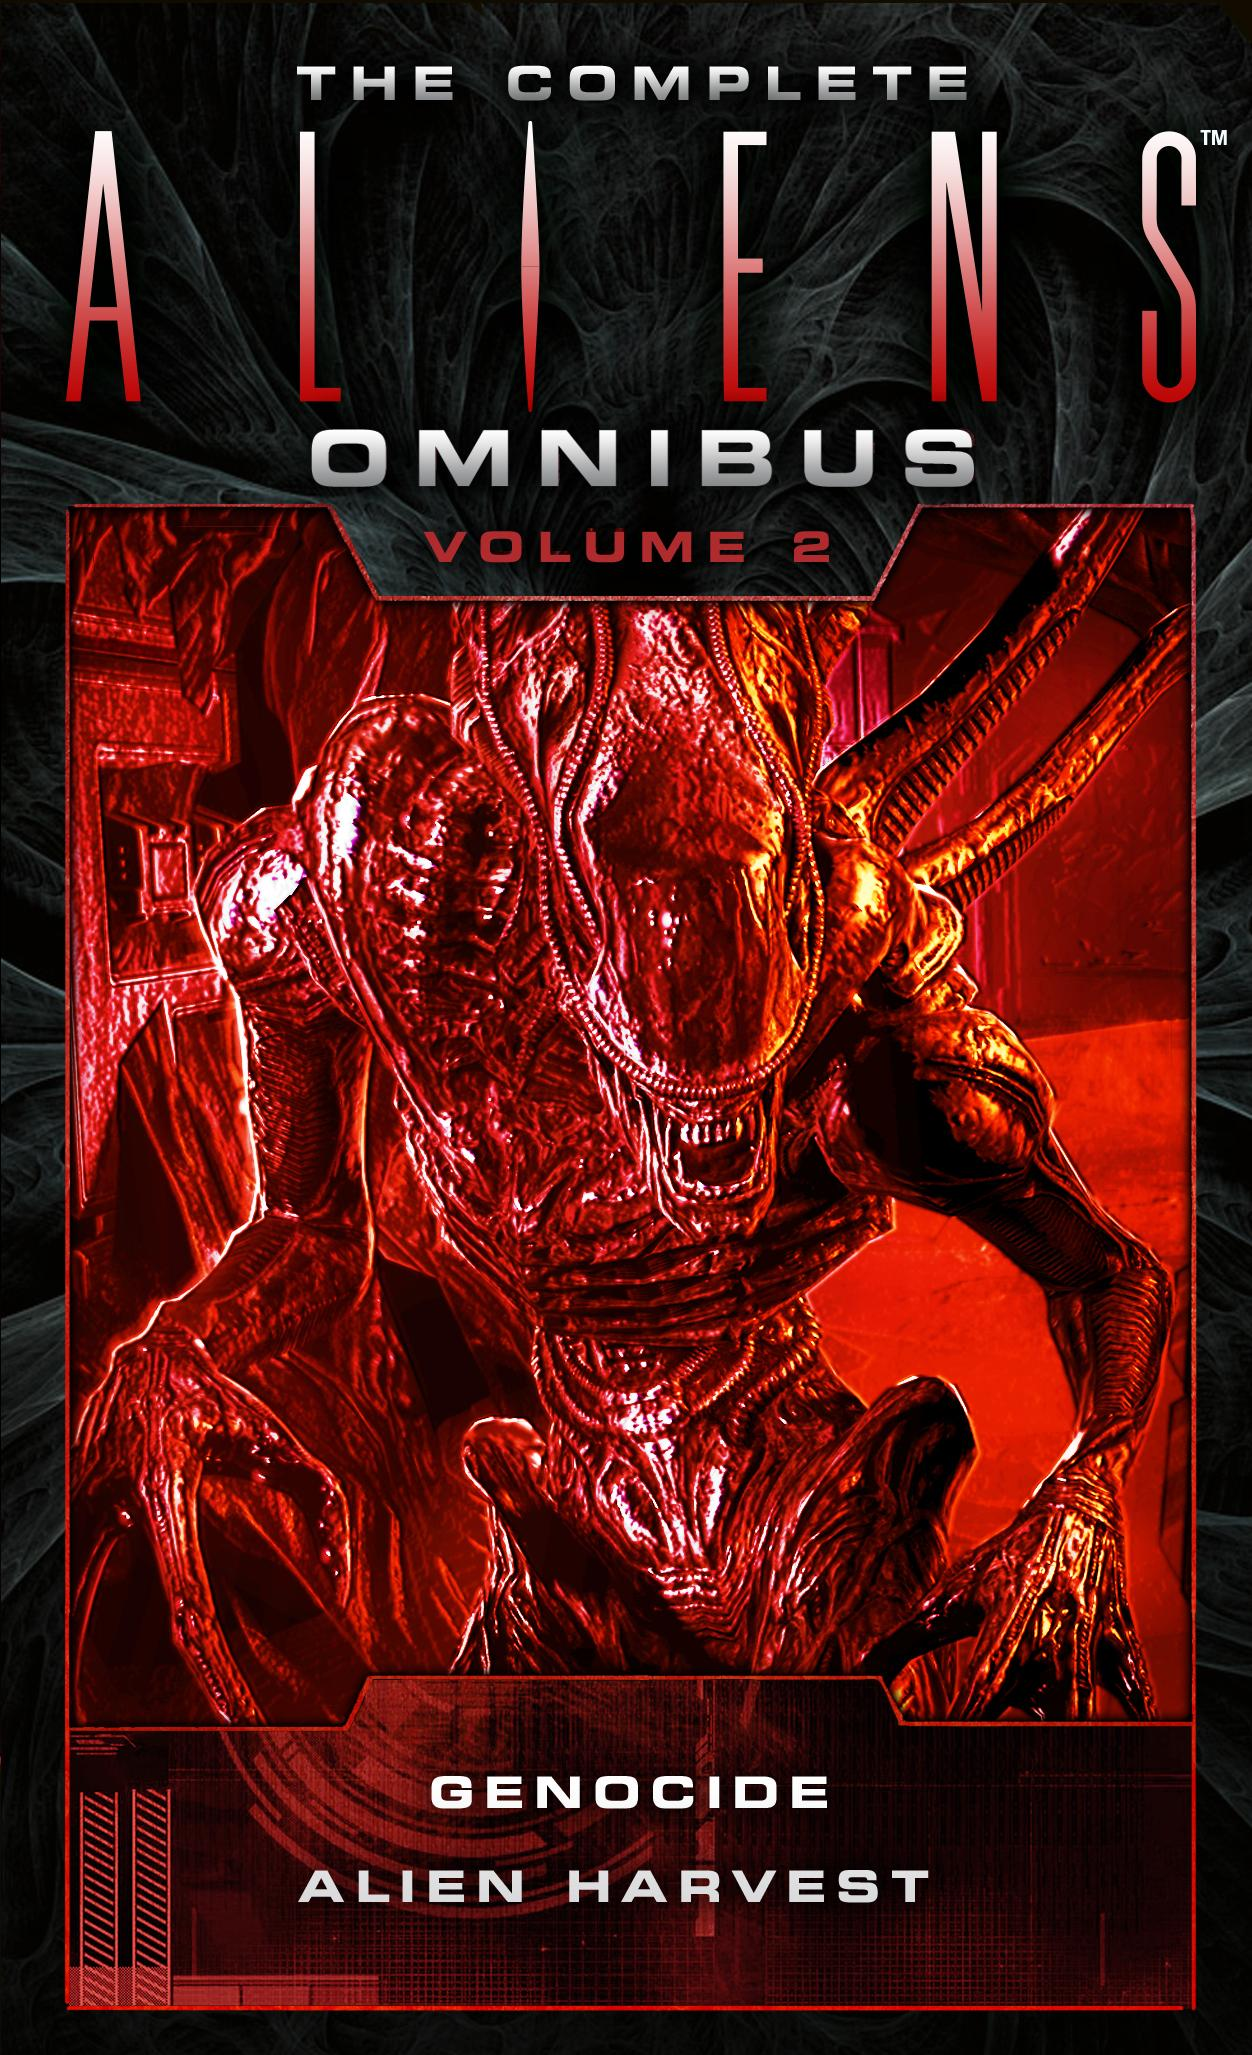 The Complete Aliens Omnibus: Volume Two (Genocide, Alien Harvest) complete how to be a gardener